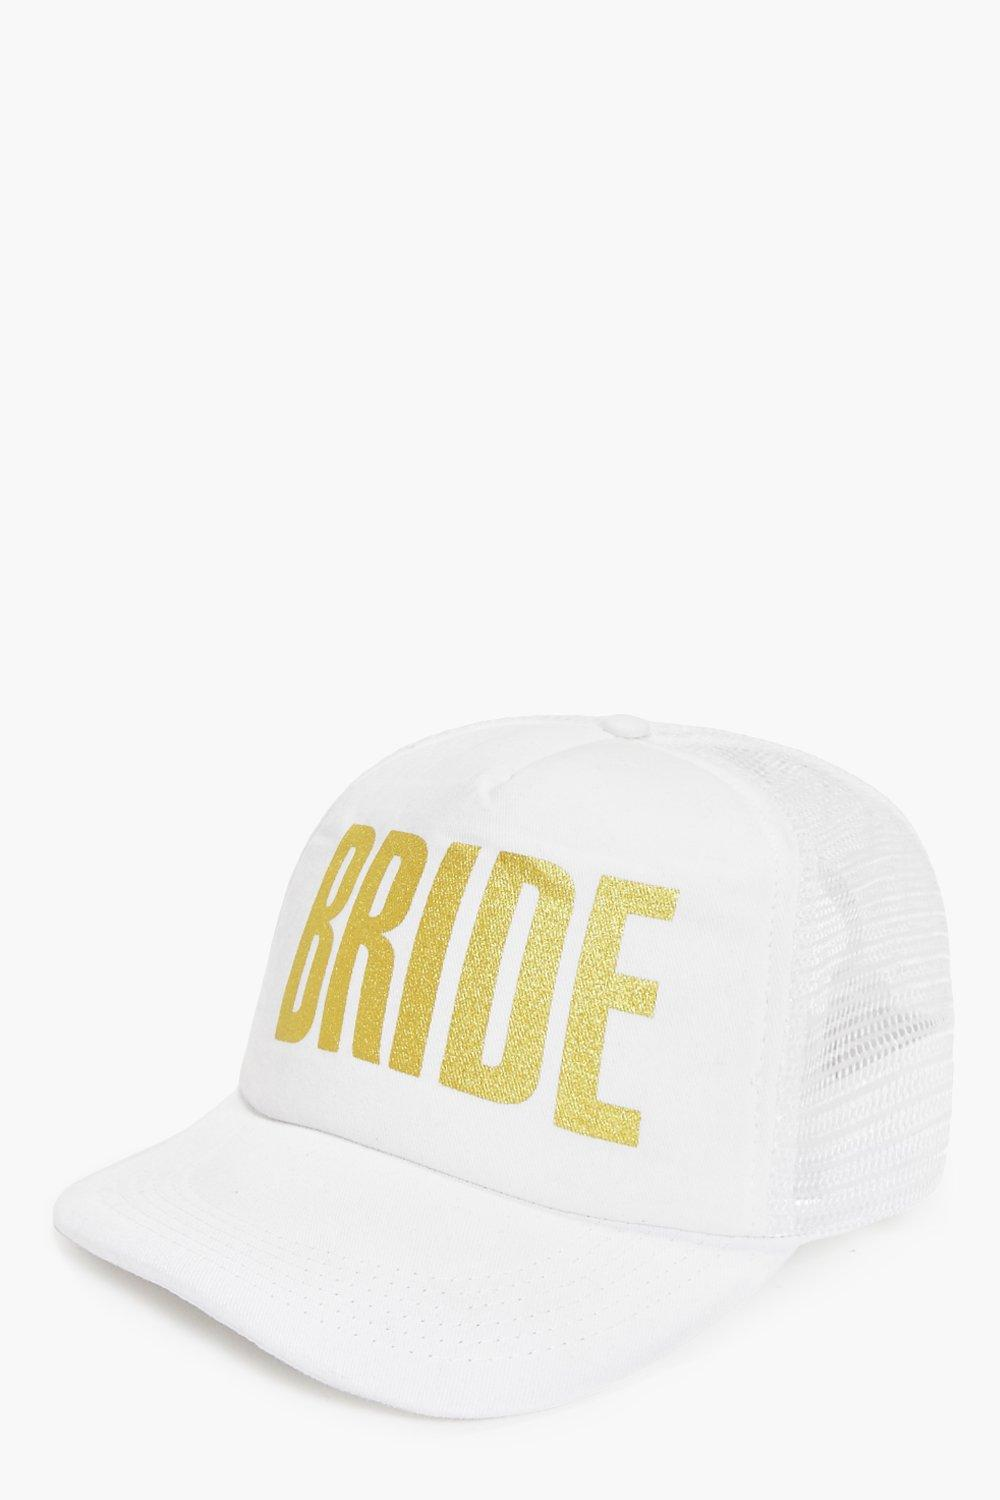 Bride Slogan Baseball Cap - white - Kate Bride Slo